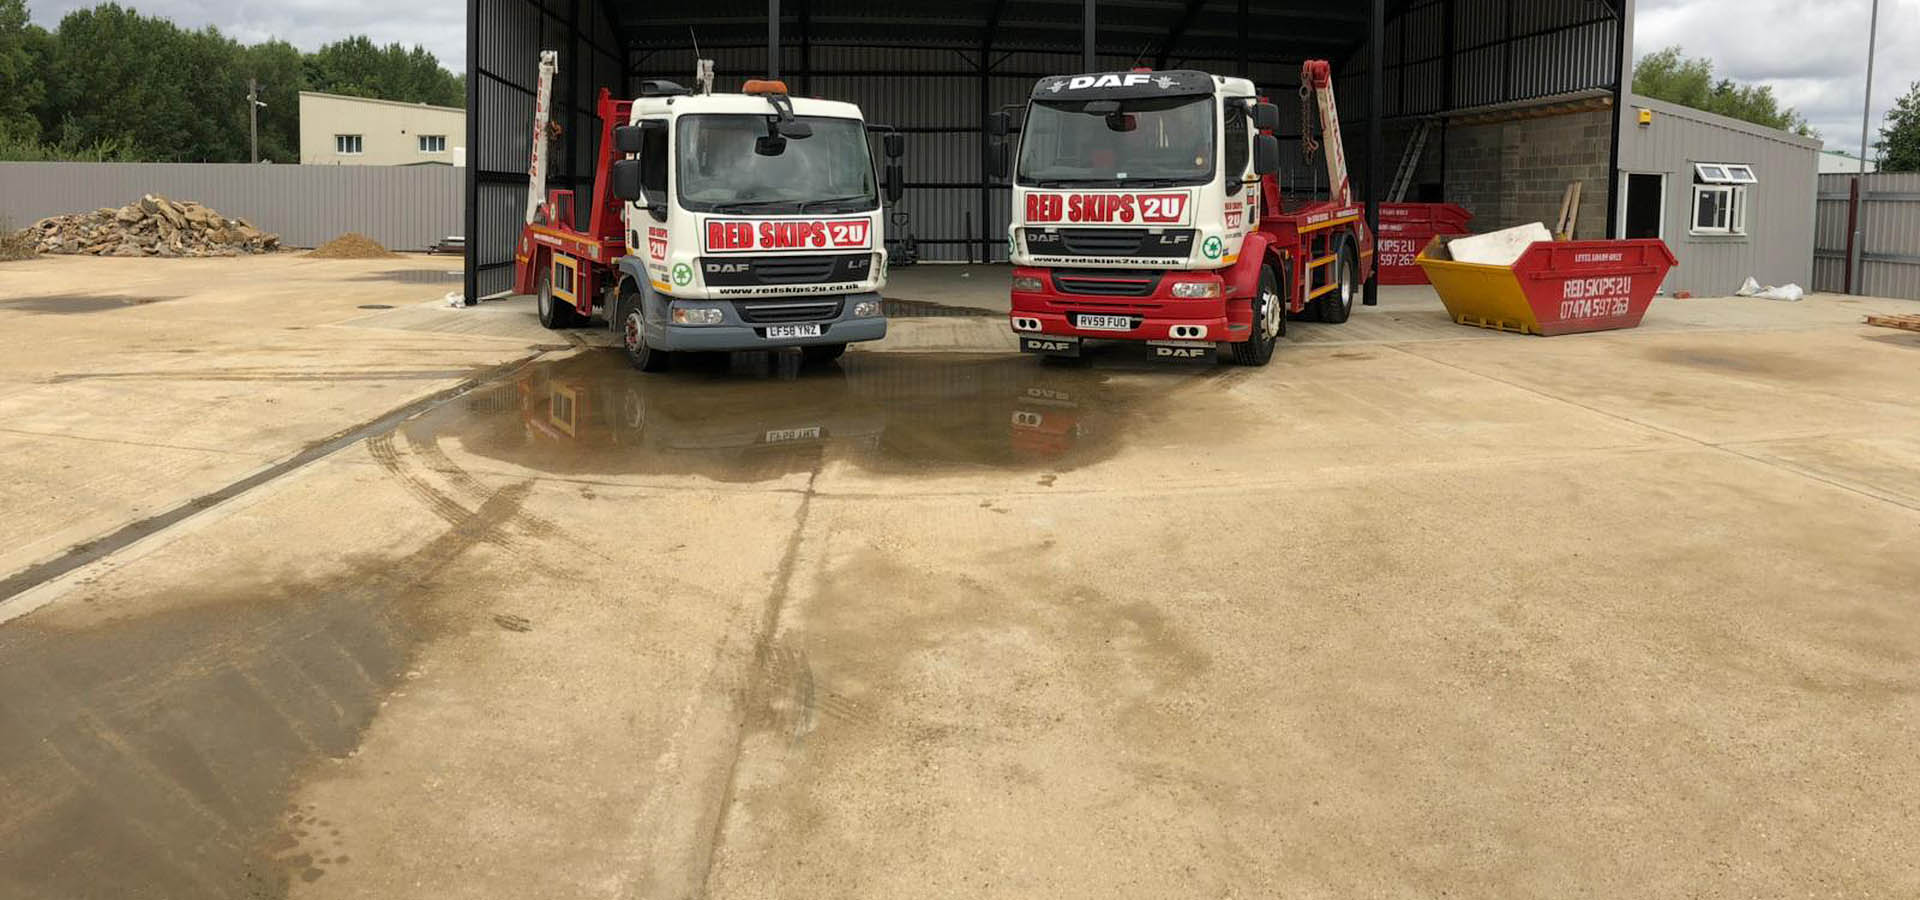 RED SKIPS 2U<br>SKIP HIRE &<br>RECYCLING SERVICES